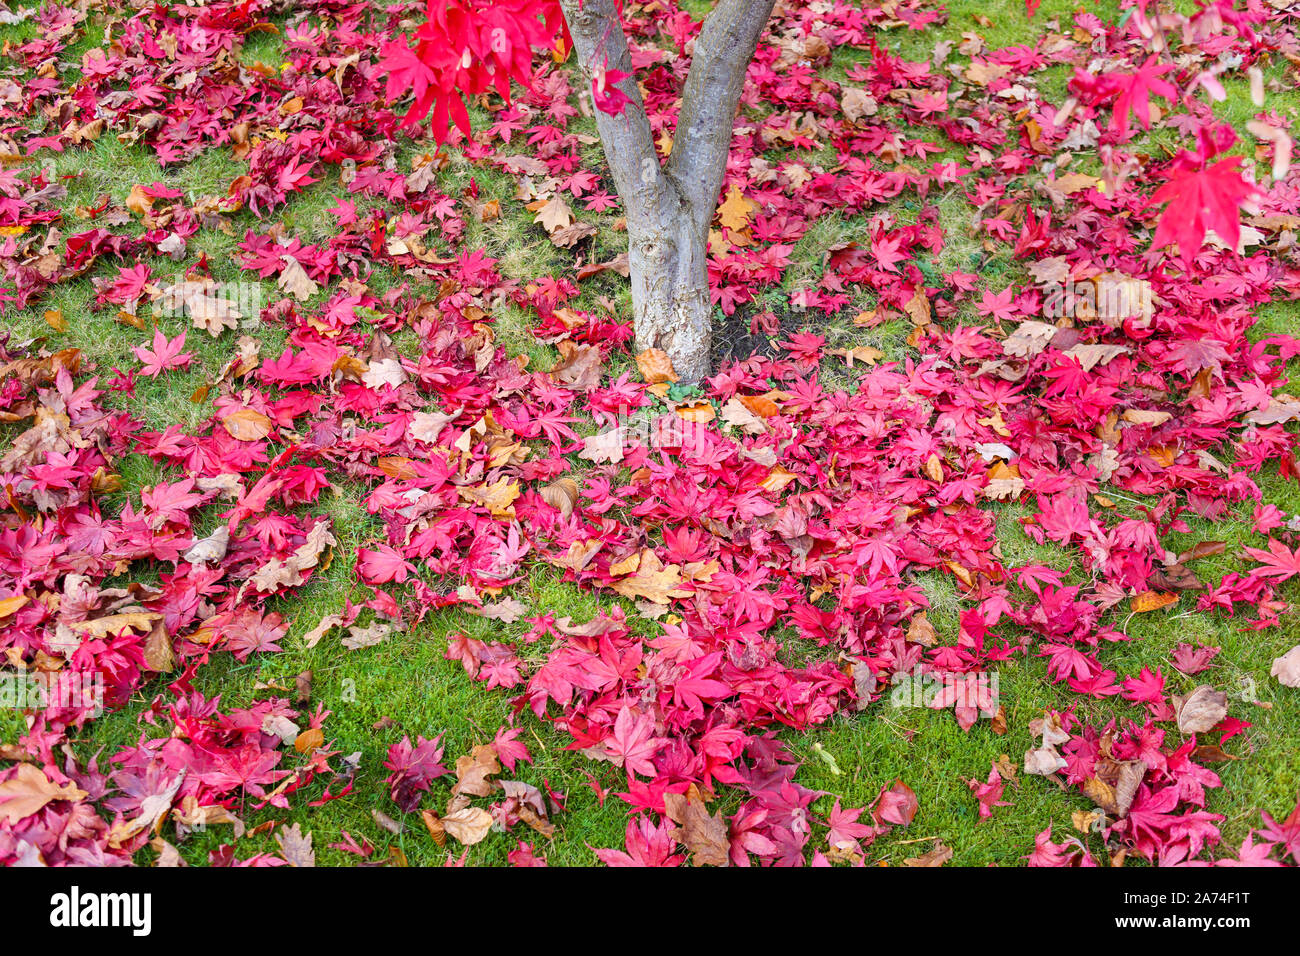 A carpet of crimson red fallen leaves from a Japanese maple (Acer palmatum) around the tree trunk on grass in autumn in south-east England, UK Stock Photo